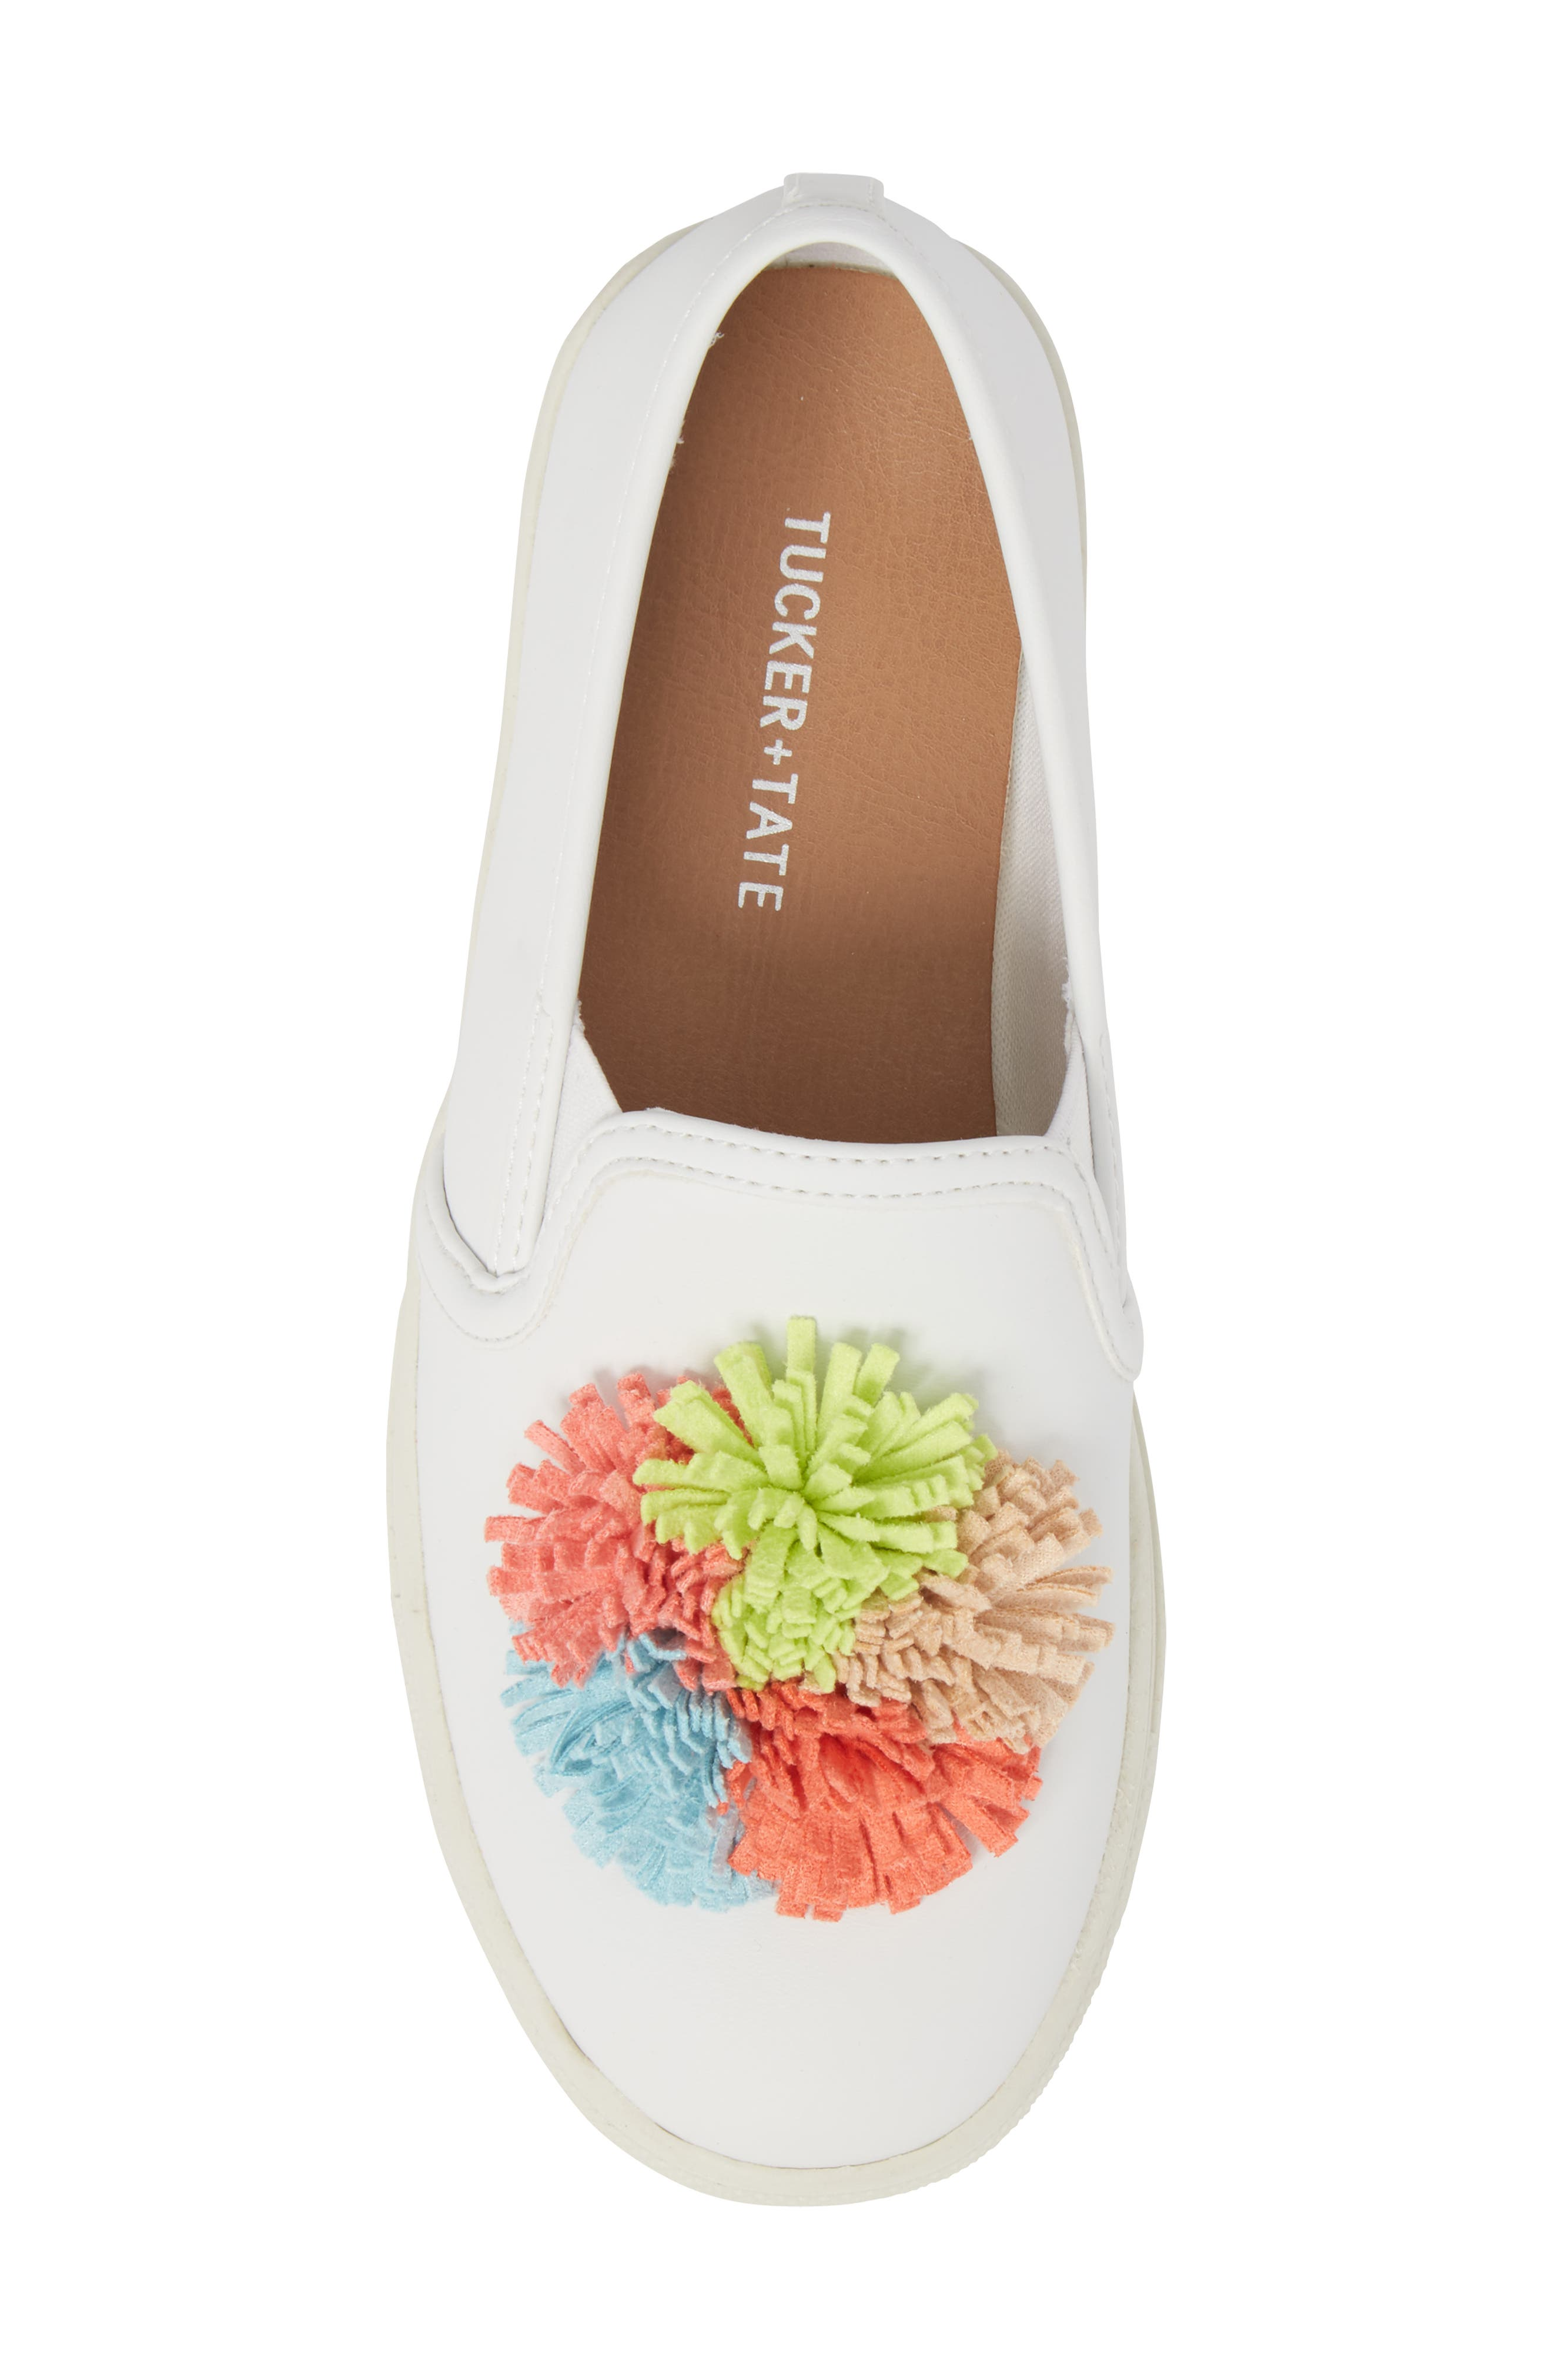 Twiny Pompom Slip-On Sneaker,                             Alternate thumbnail 5, color,                             White Faux Leather